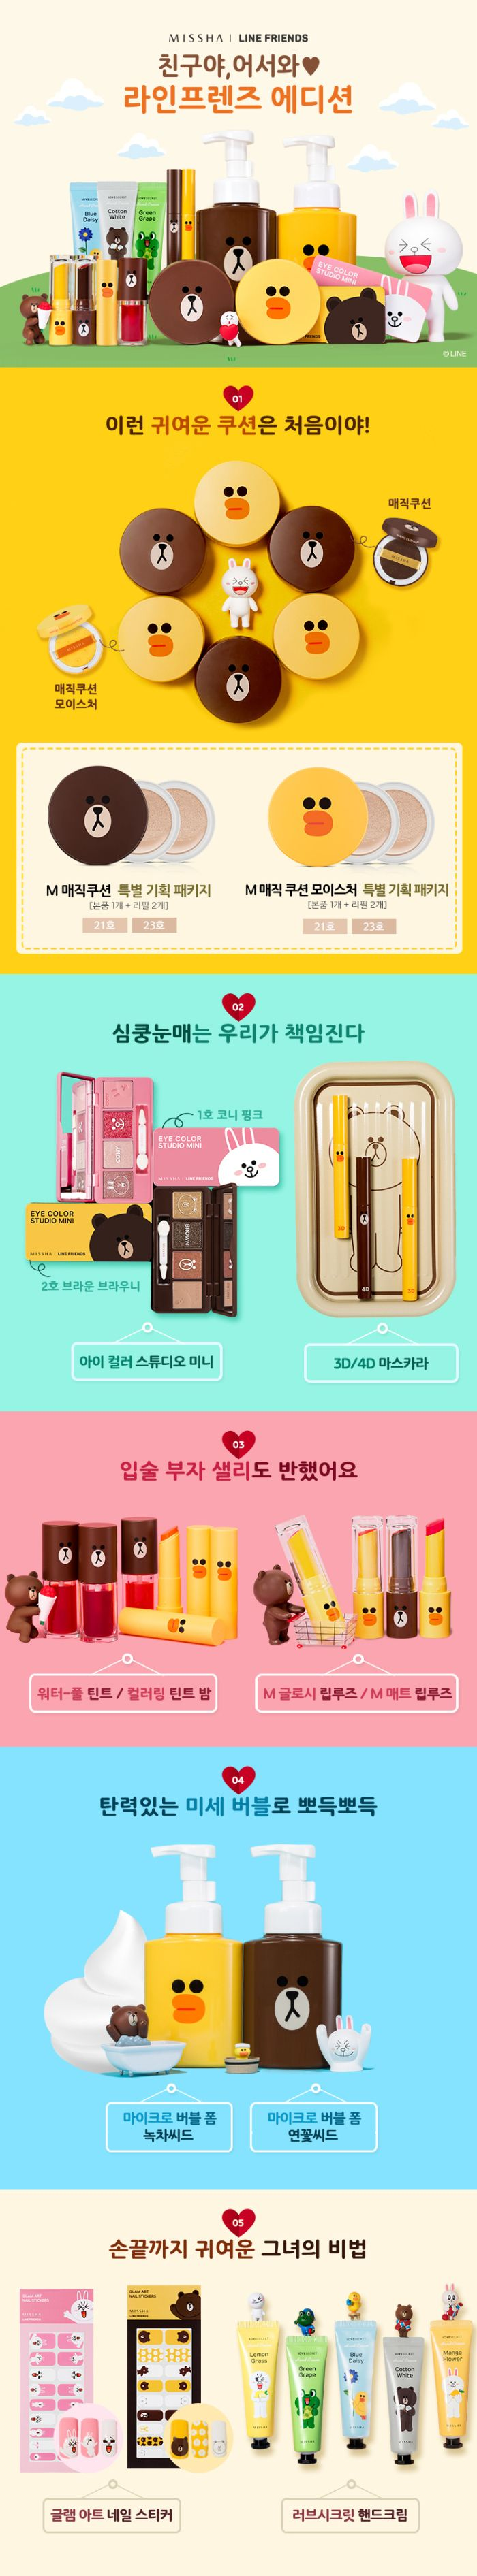 Missha x Line Friends (Collage)